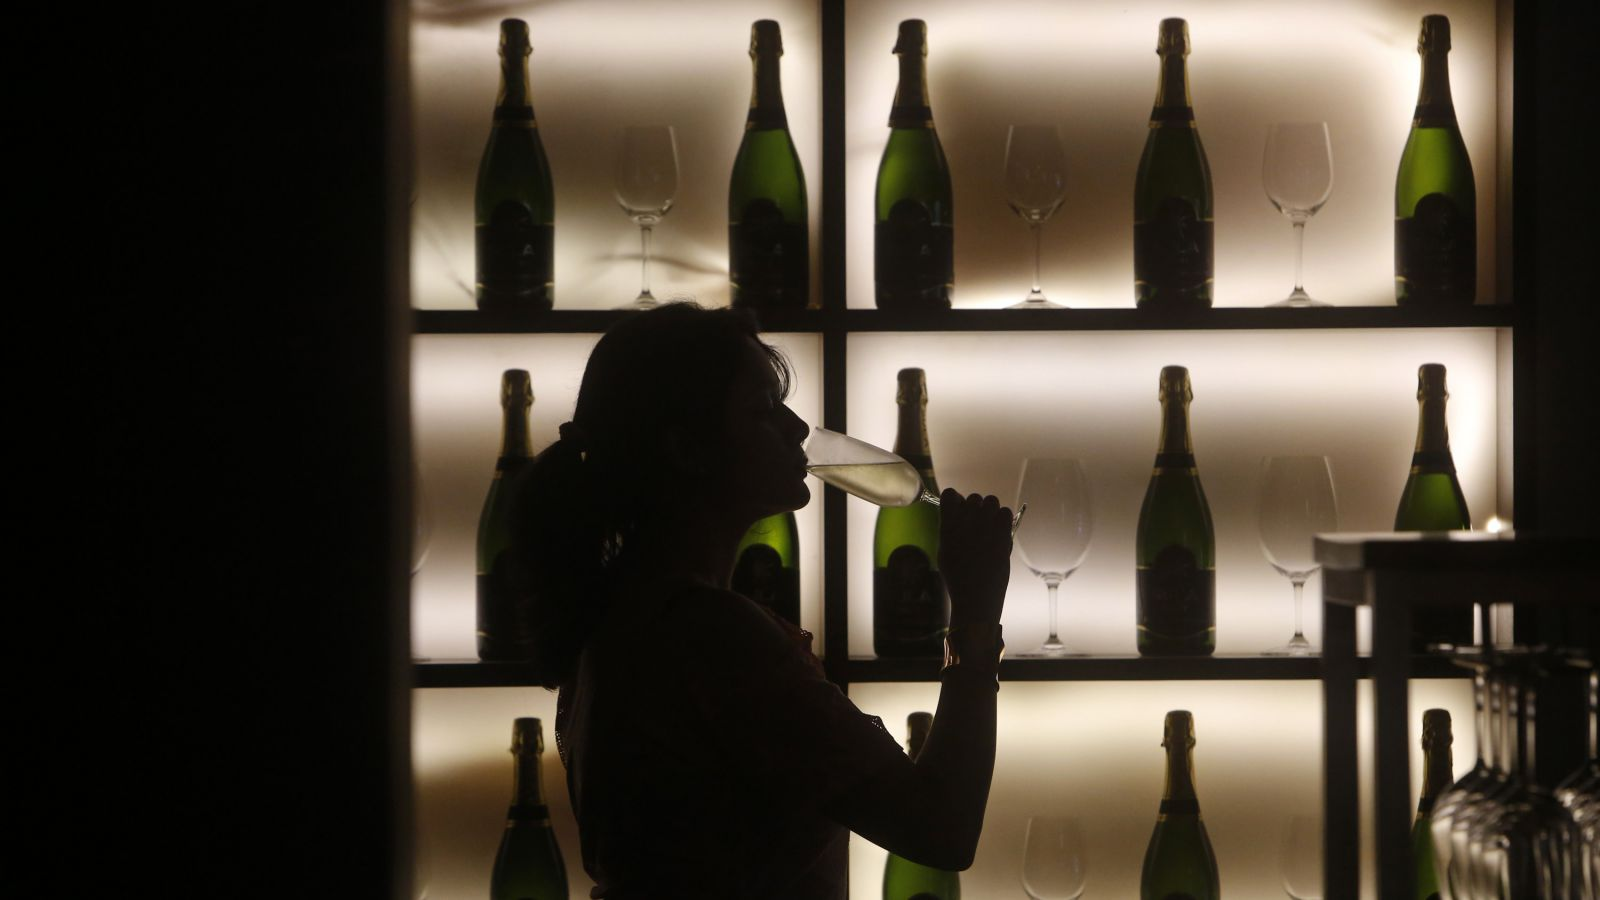 A woman poses with a glass of wine at a tapas bar in Mumbai March 9, 2013. Women who drink, long portrayed as less than respectable by Bollywood movies and still wary of entering most watering holes, are becoming big business in socially conservative India. Picture taken March 9, 2013.